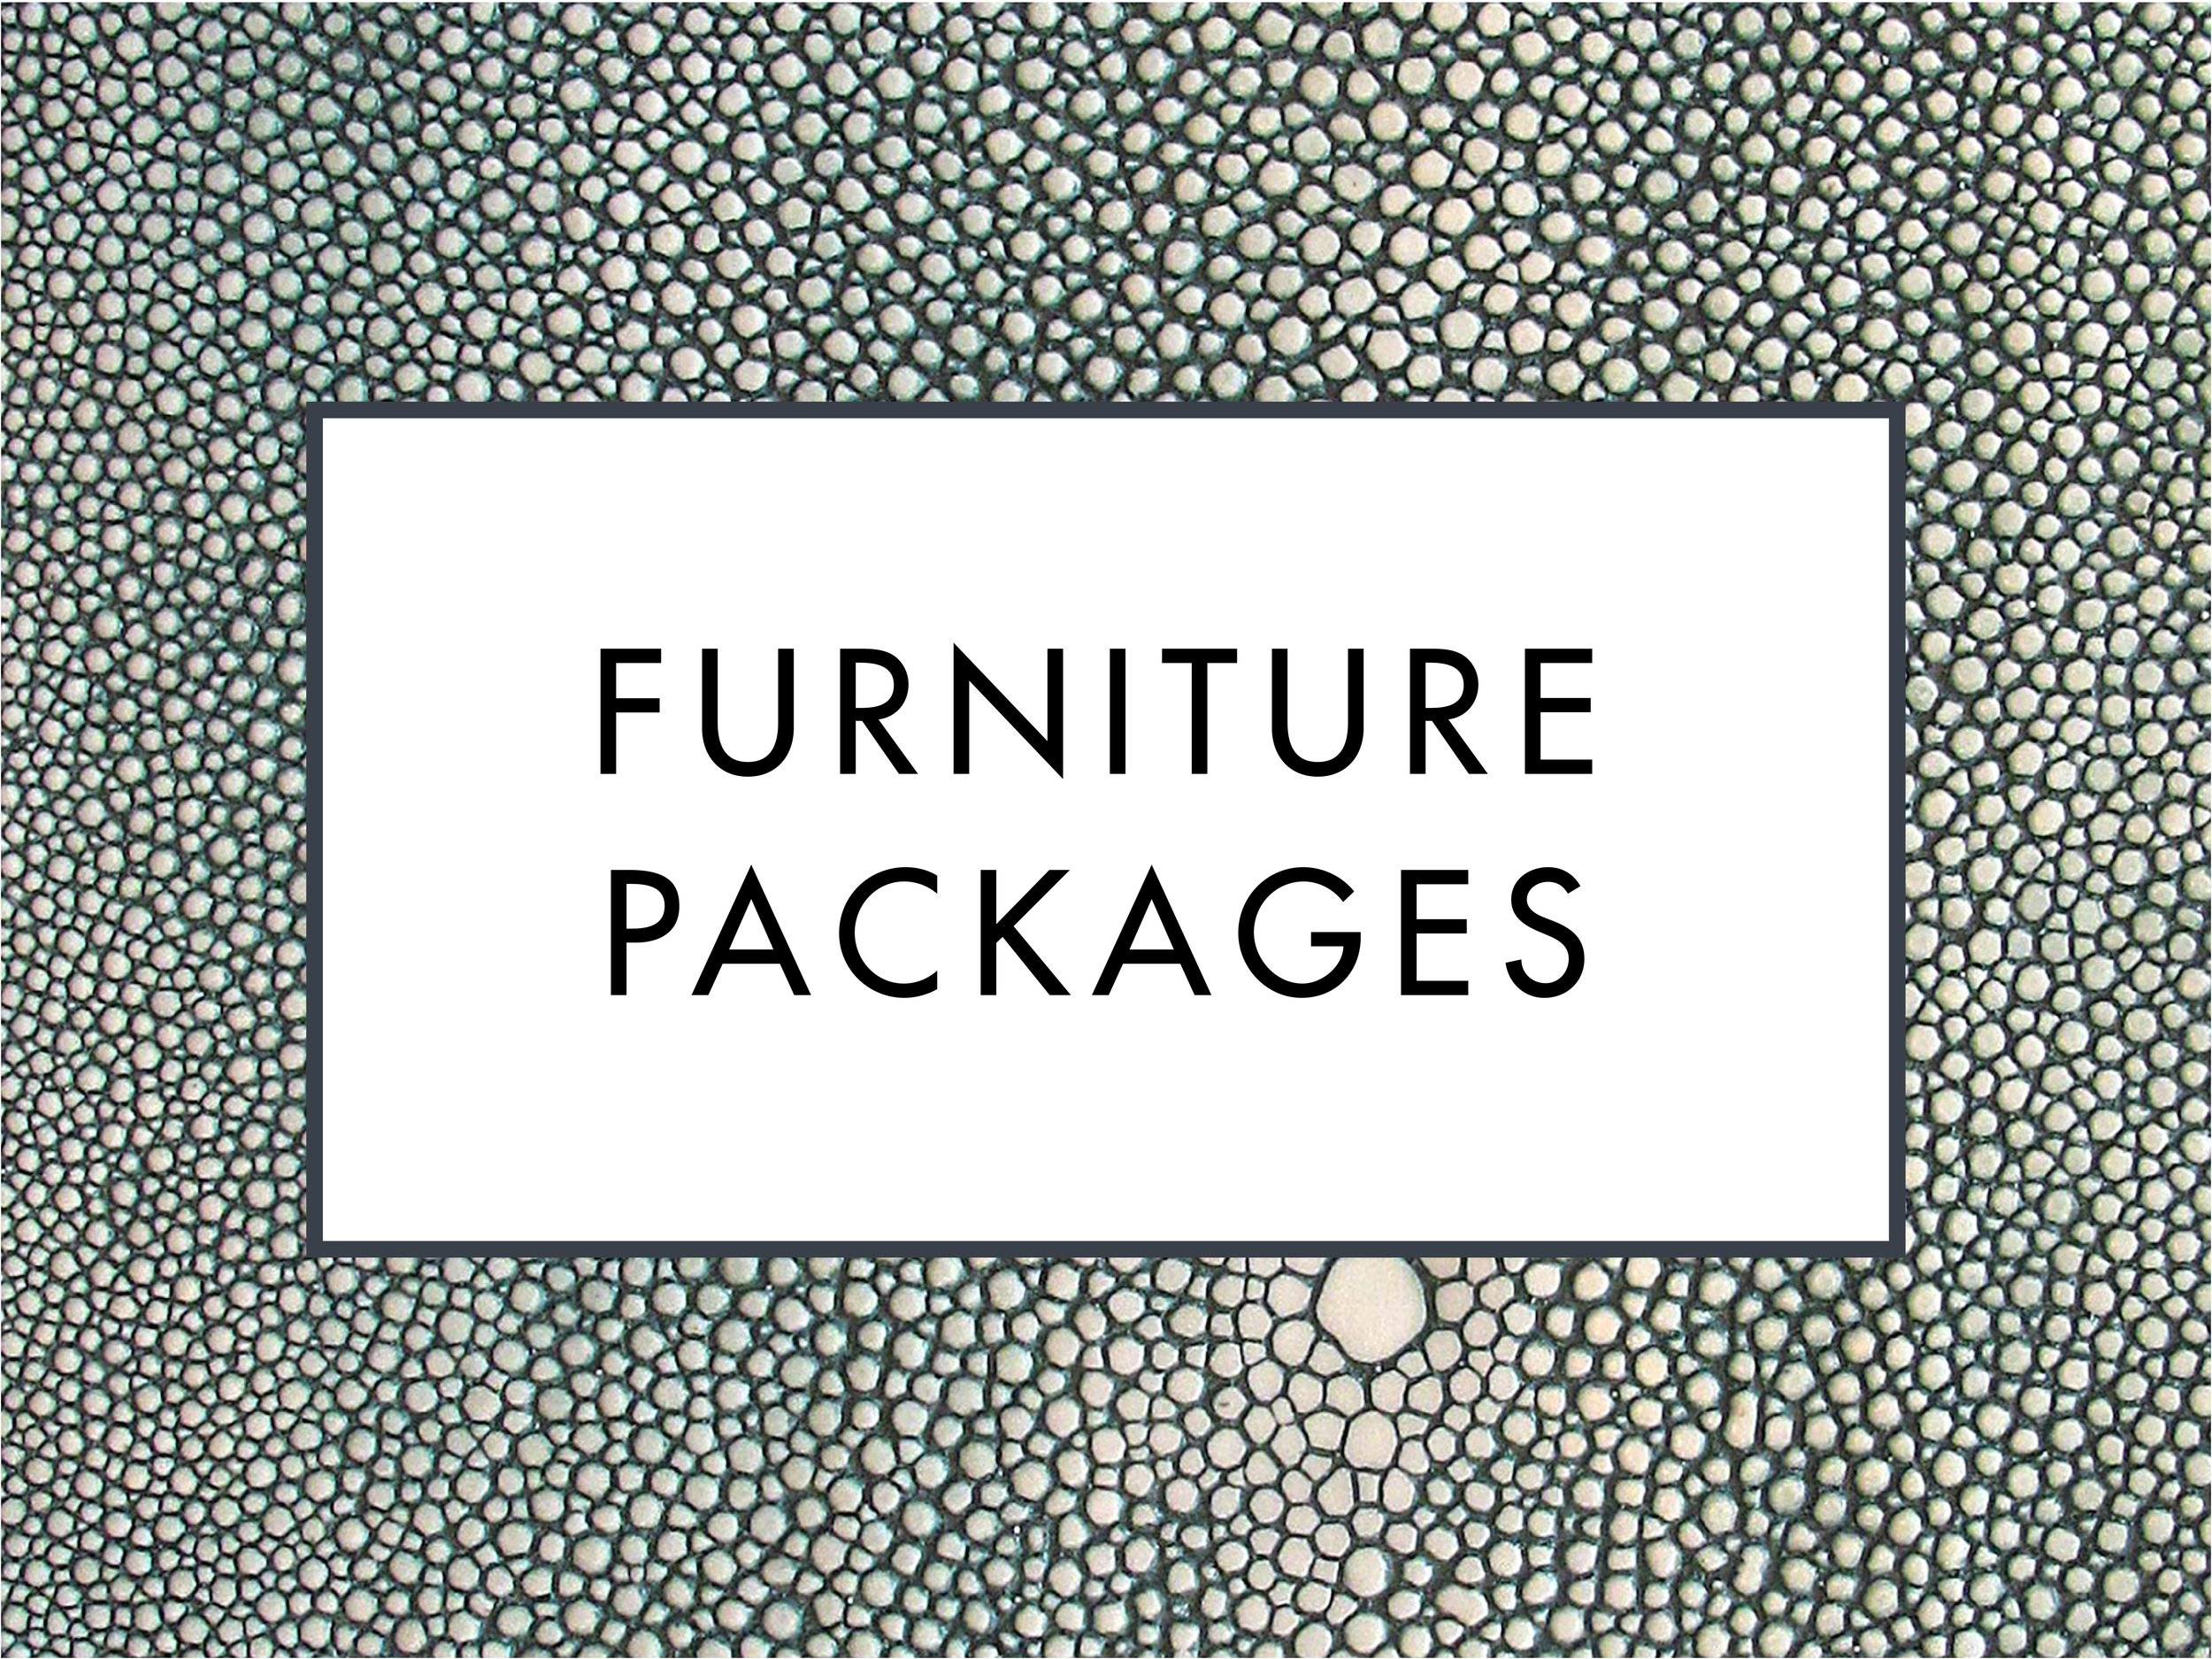 furniture packages london yohan may